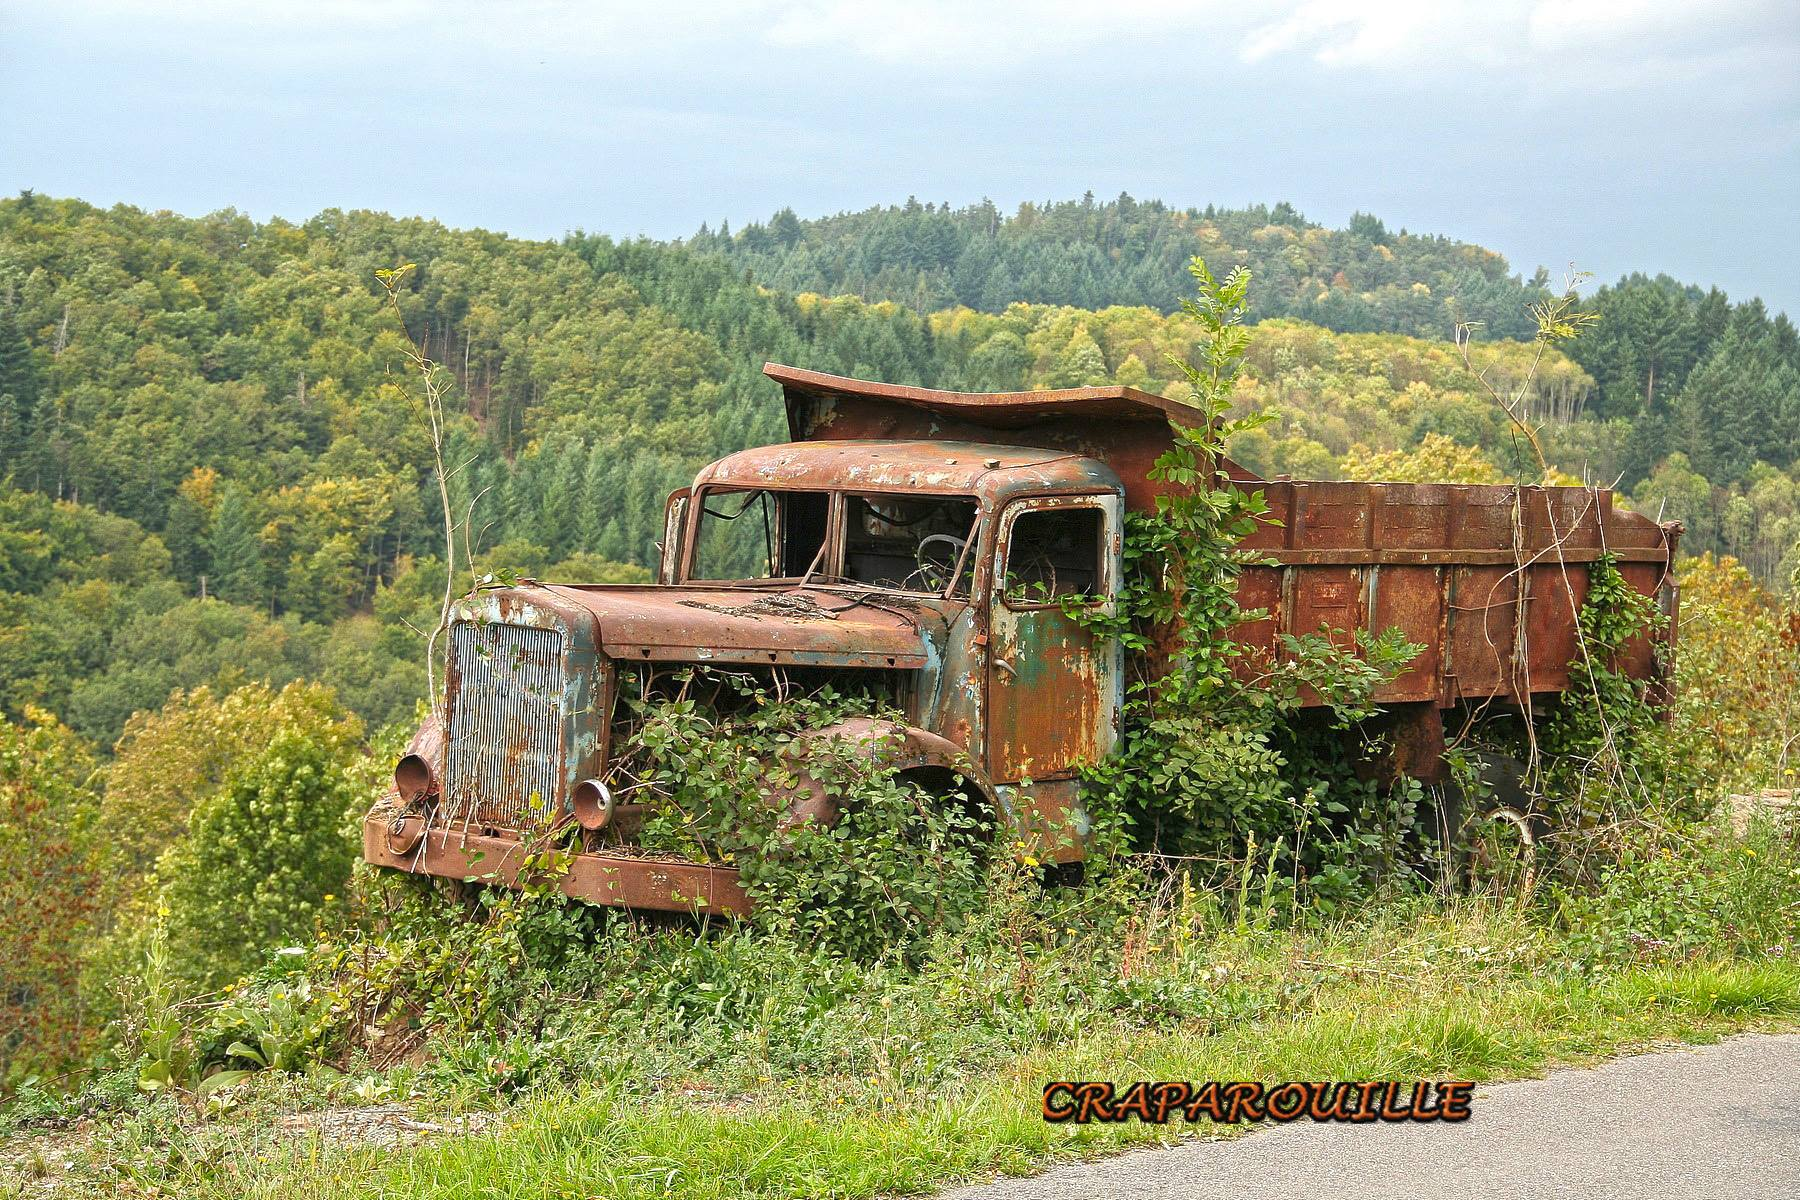 Photography-Diamonds-in-Rust-Craparouille-103